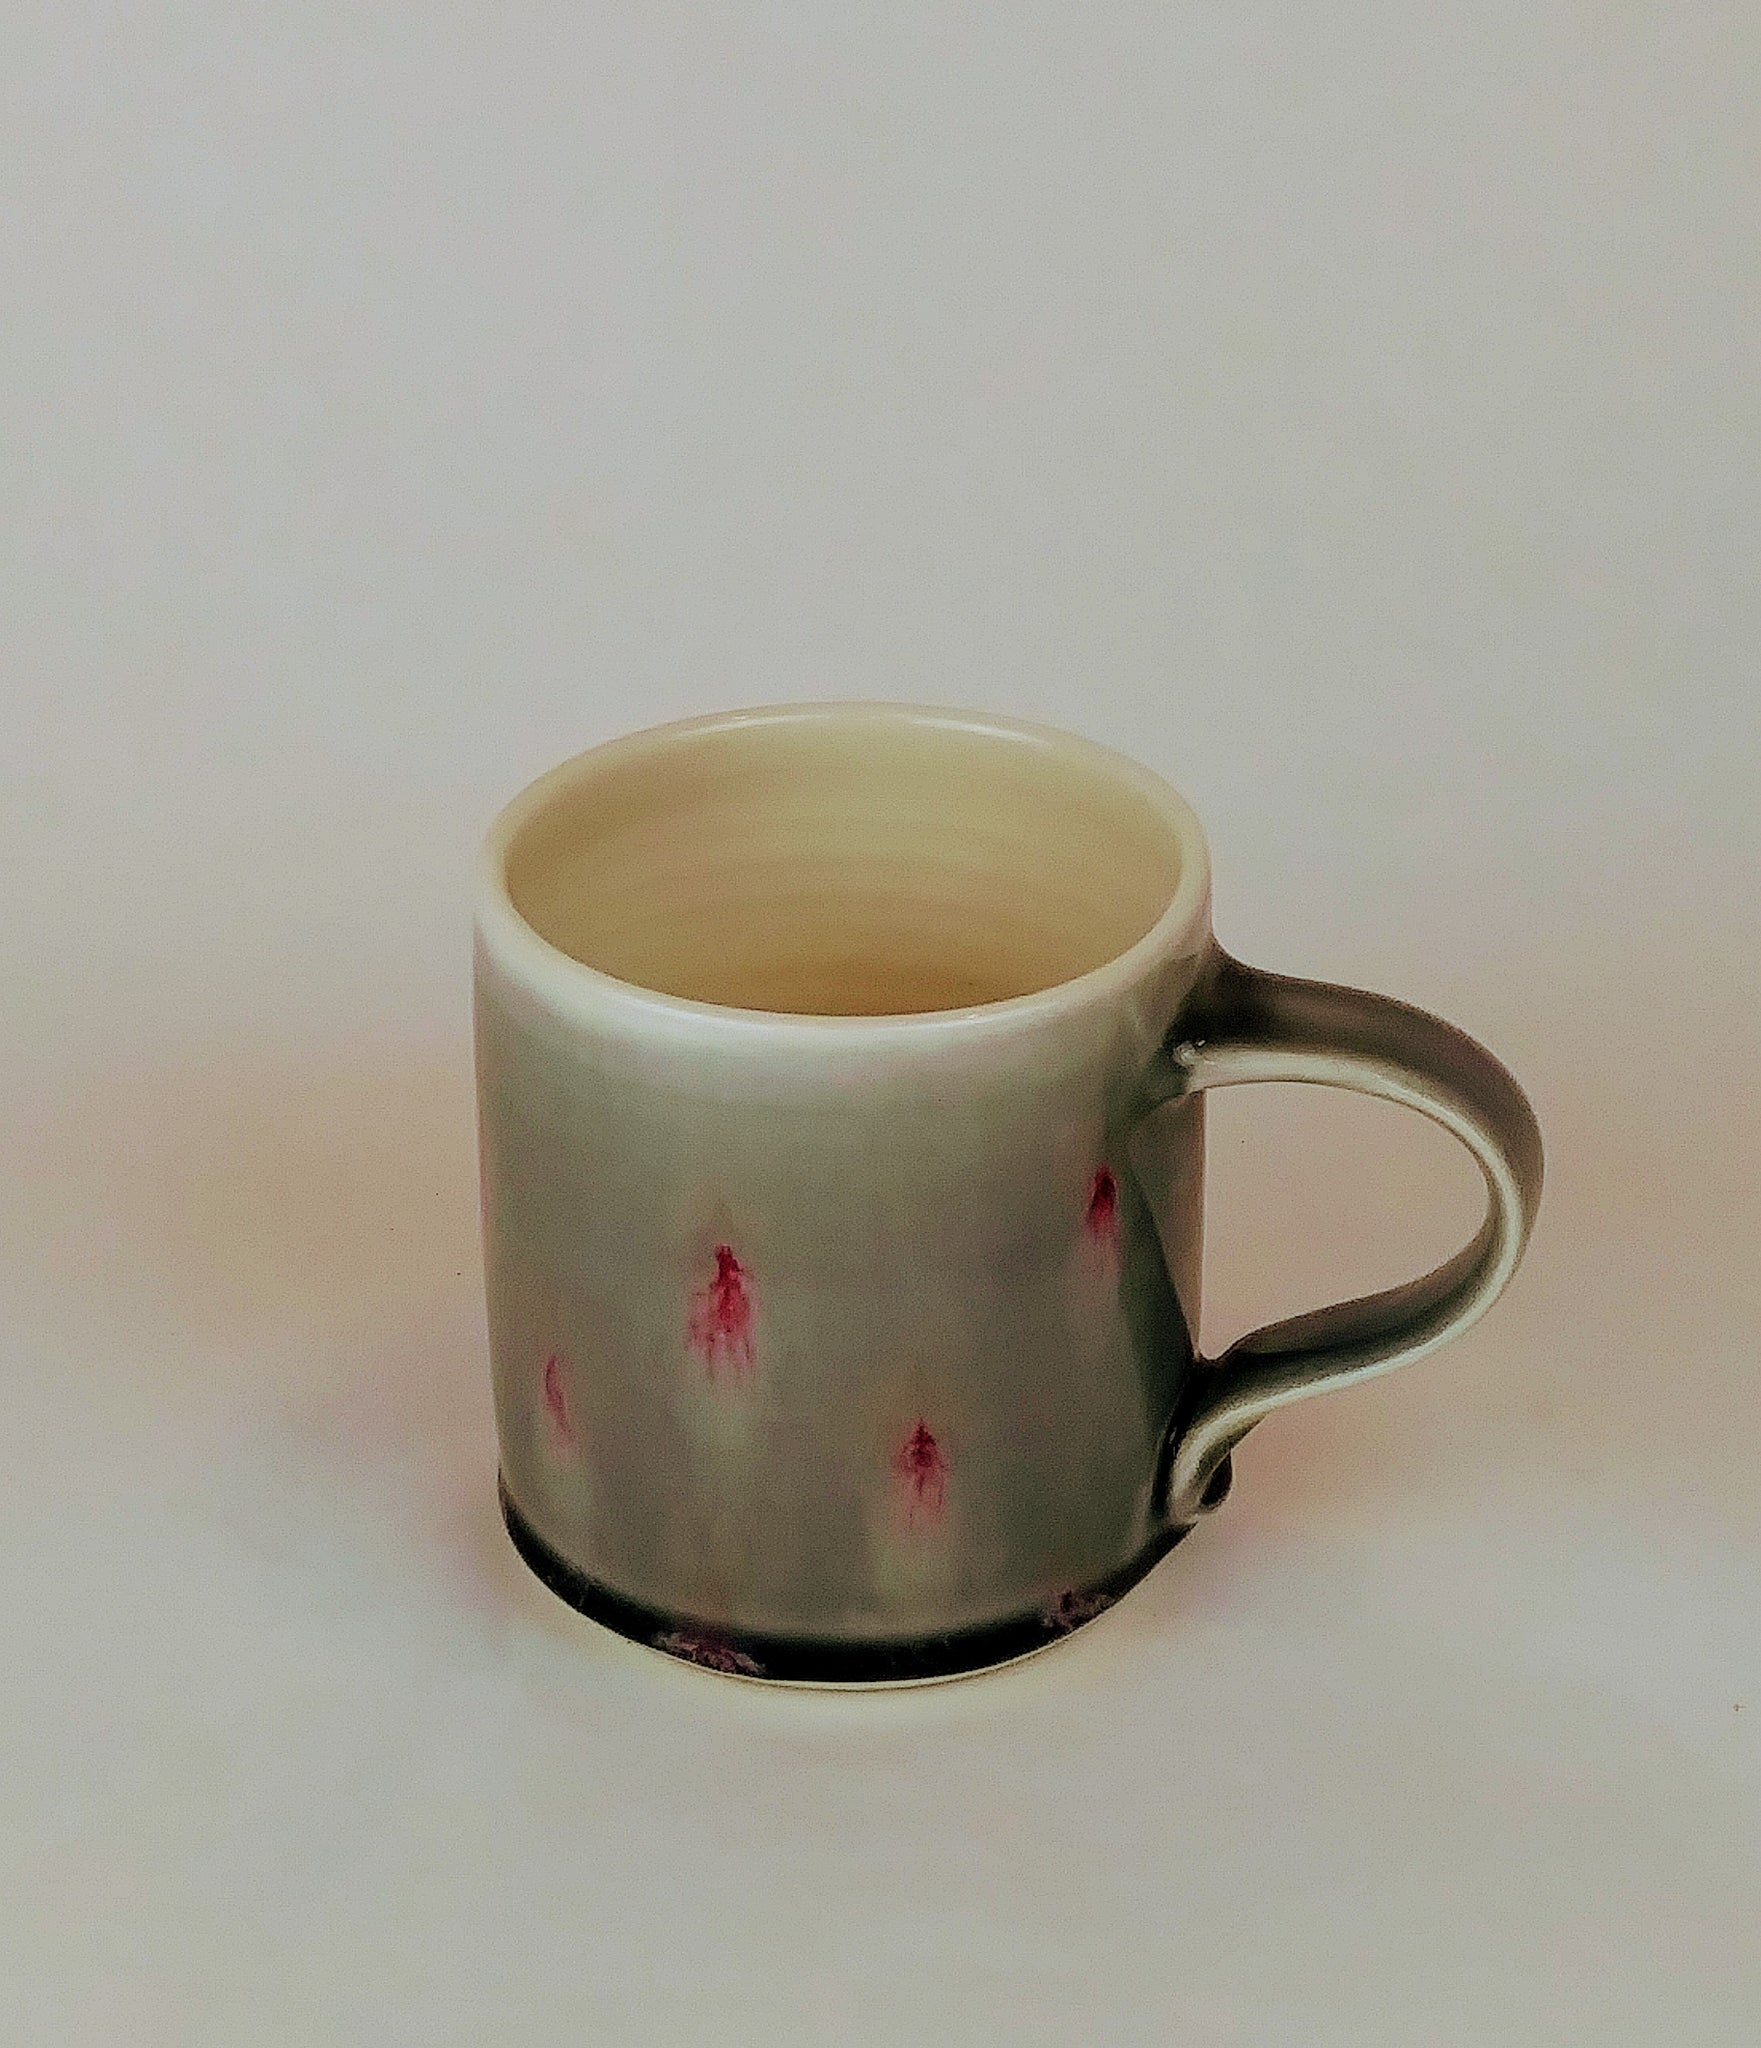 Raging Bowl Mugs